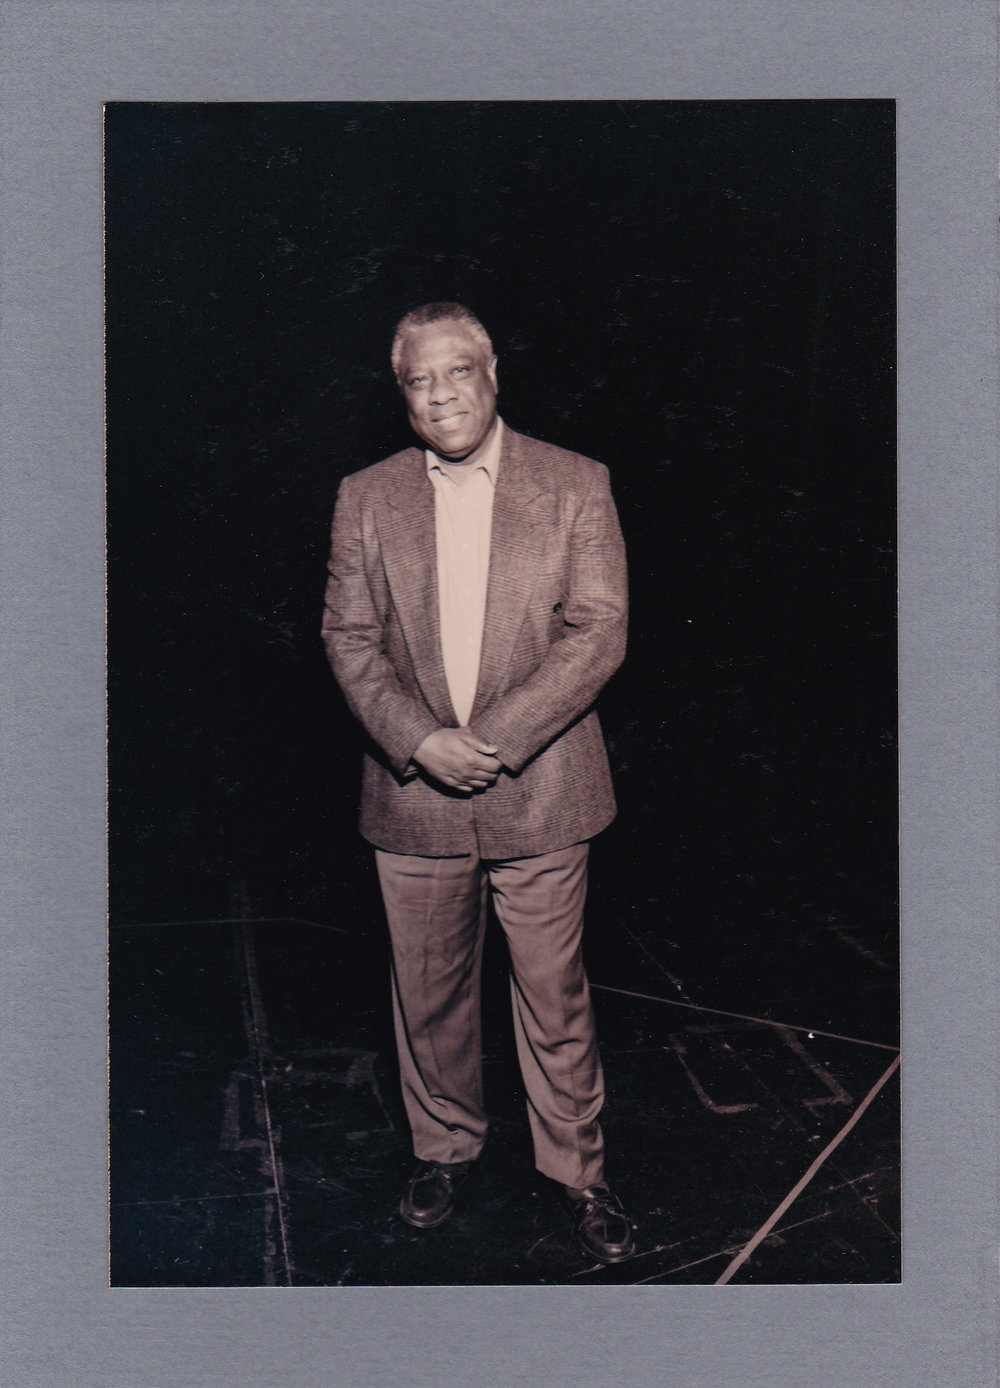 Woodie King - Main character of King of Stage